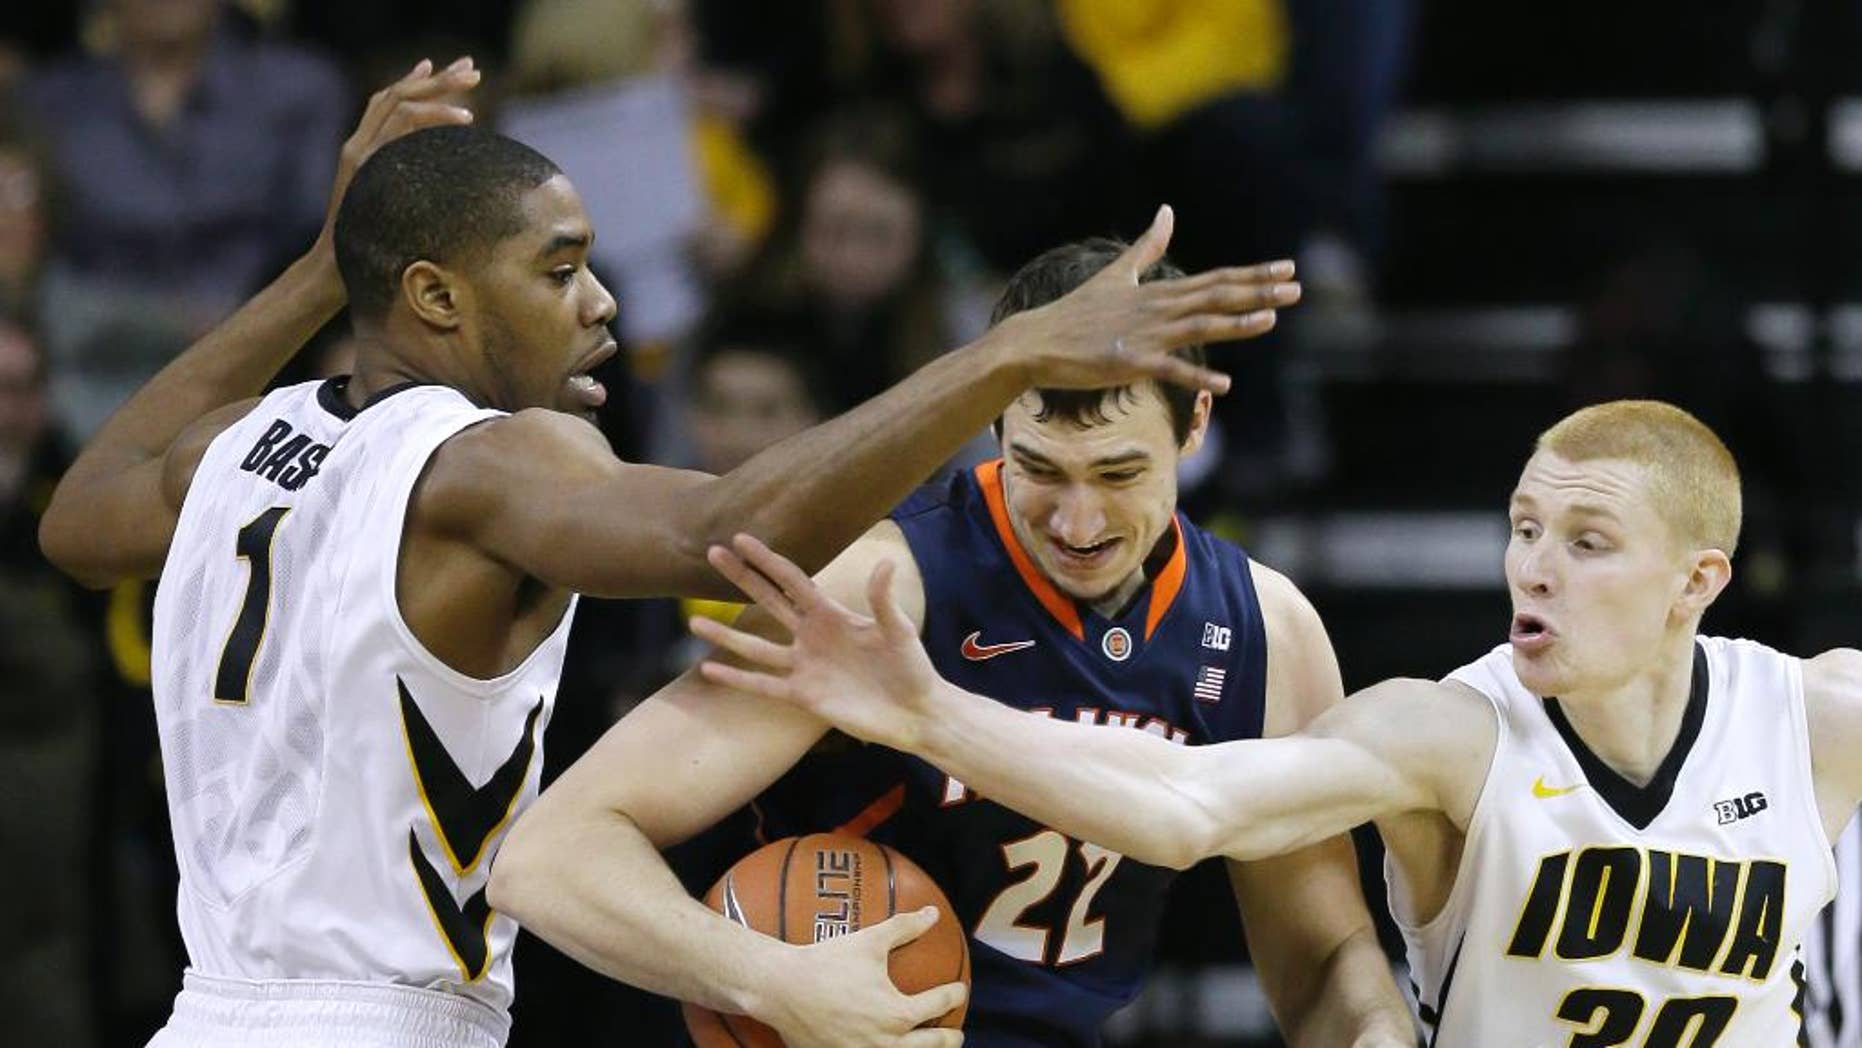 Illinois center Maverick Morgan, center, looks to drive between Iowa's Melsahn Basabe, left, and Aaron White, right, during the first half of an NCAA college basketball game on Saturday, March 8, 2014, in Iowa City, Iowa. (AP Photo/Charlie Neibergall)